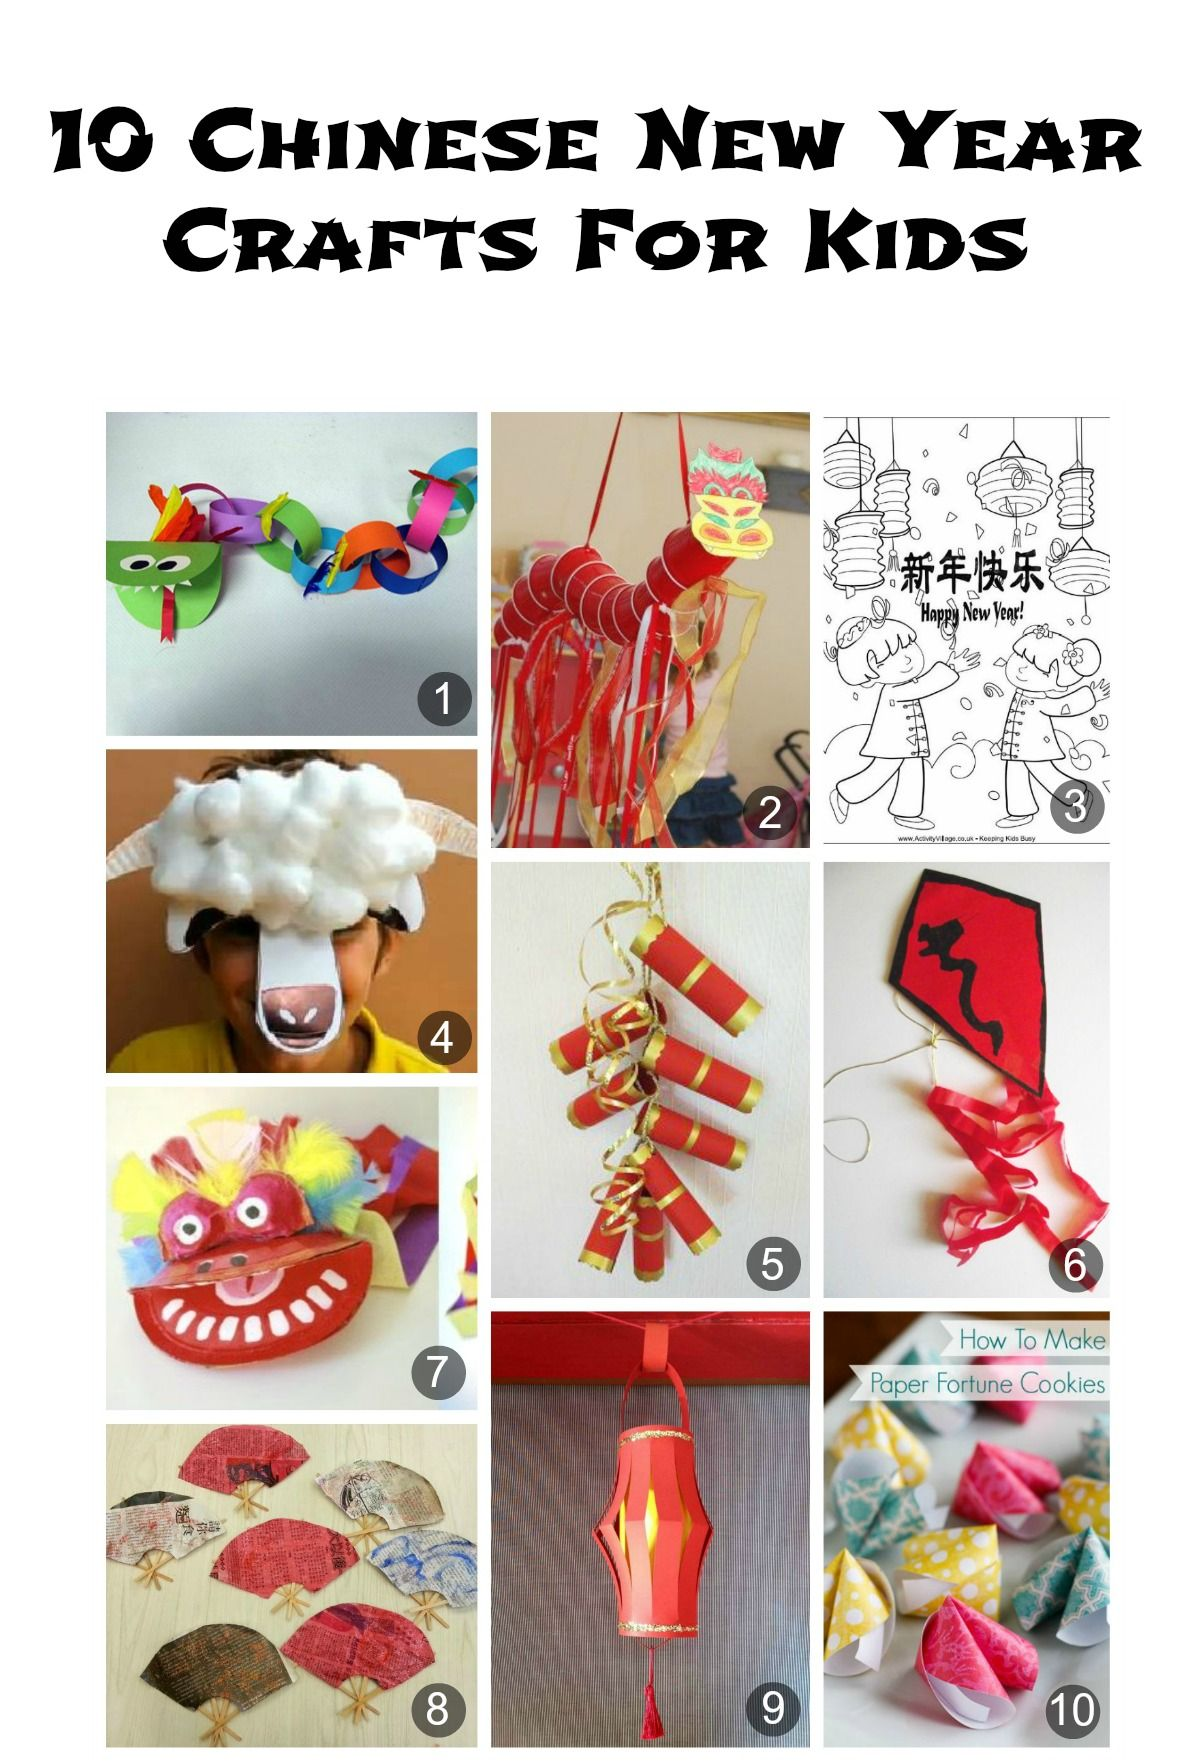 New Year Craft Ideas For Kids Part - 15: 10 Chinese New Year Crafts For Kids - Great Craft Ideas That Are Sure To Get